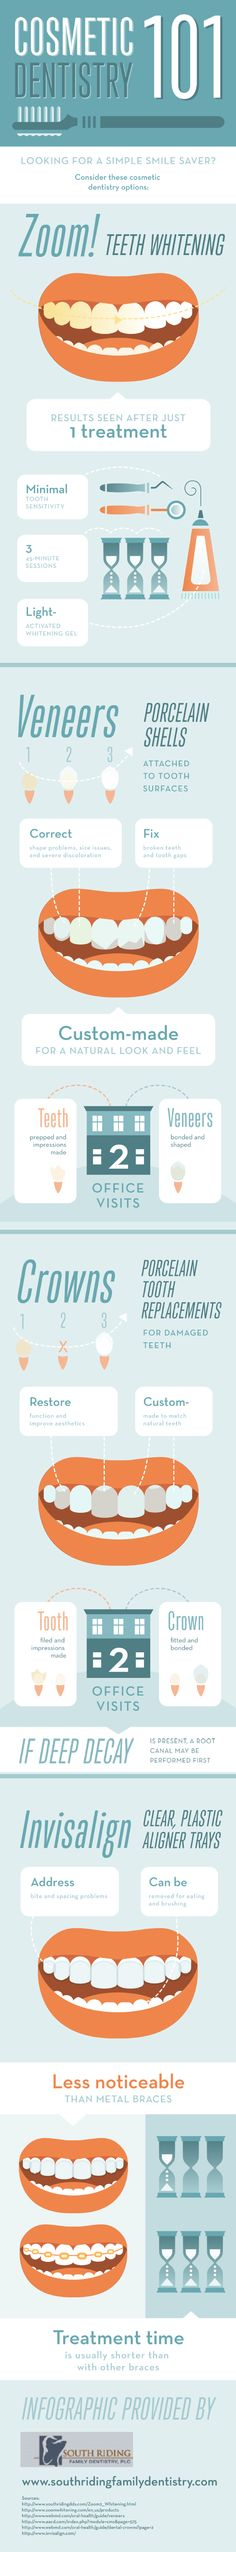 Cosmetic Dentistry 101 [INFOGRPAHIC]